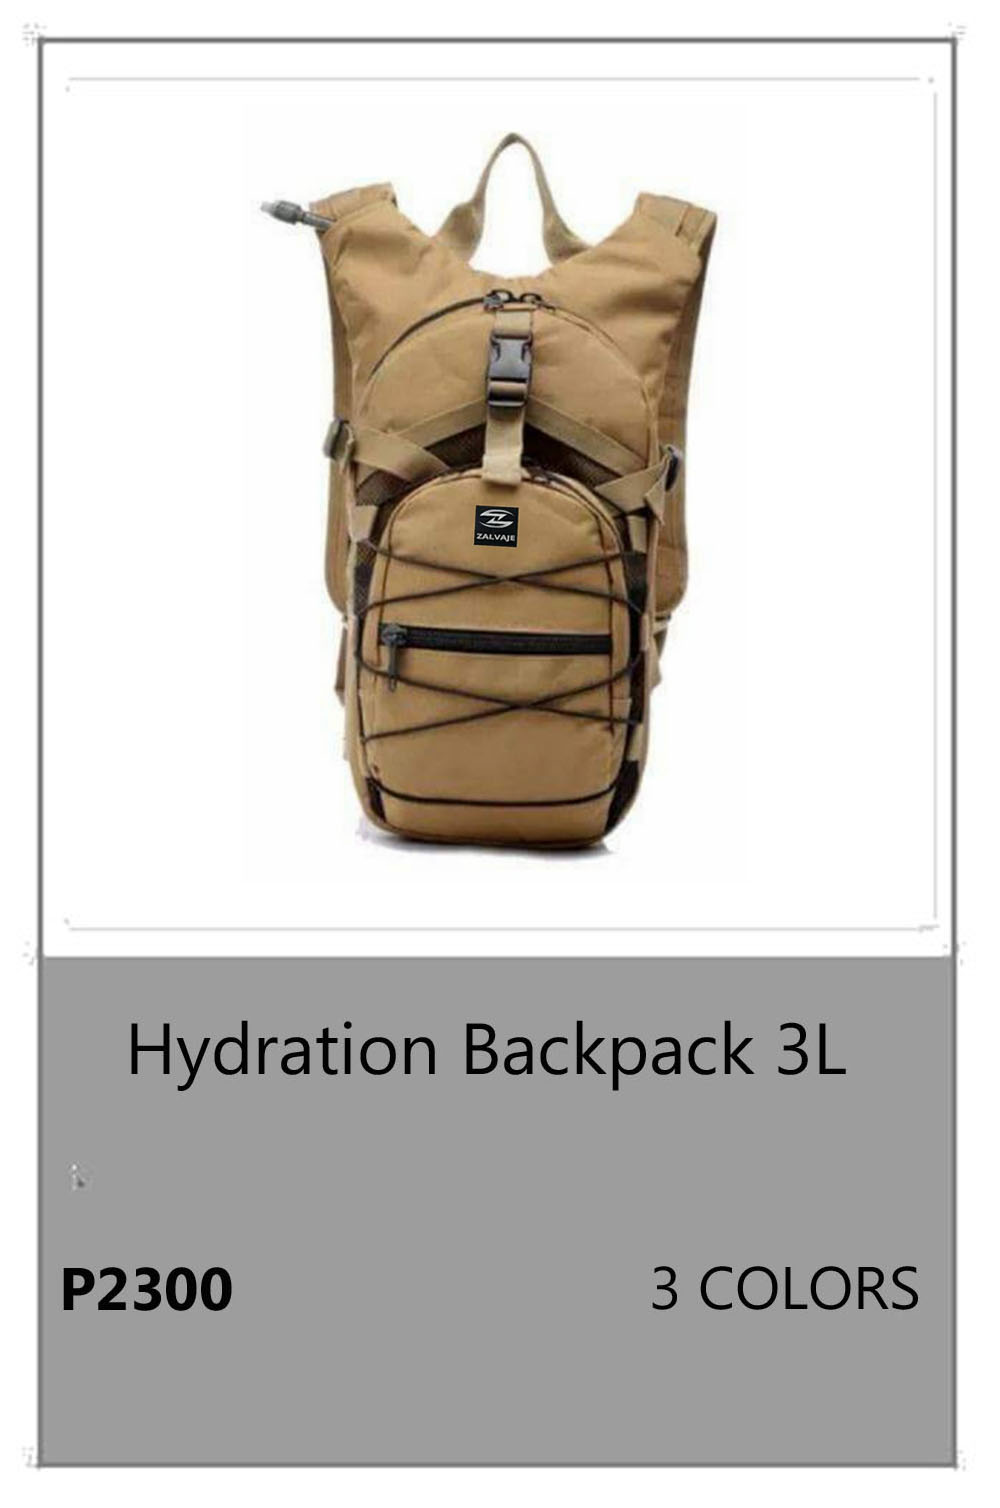 Hydration BackPack 3L